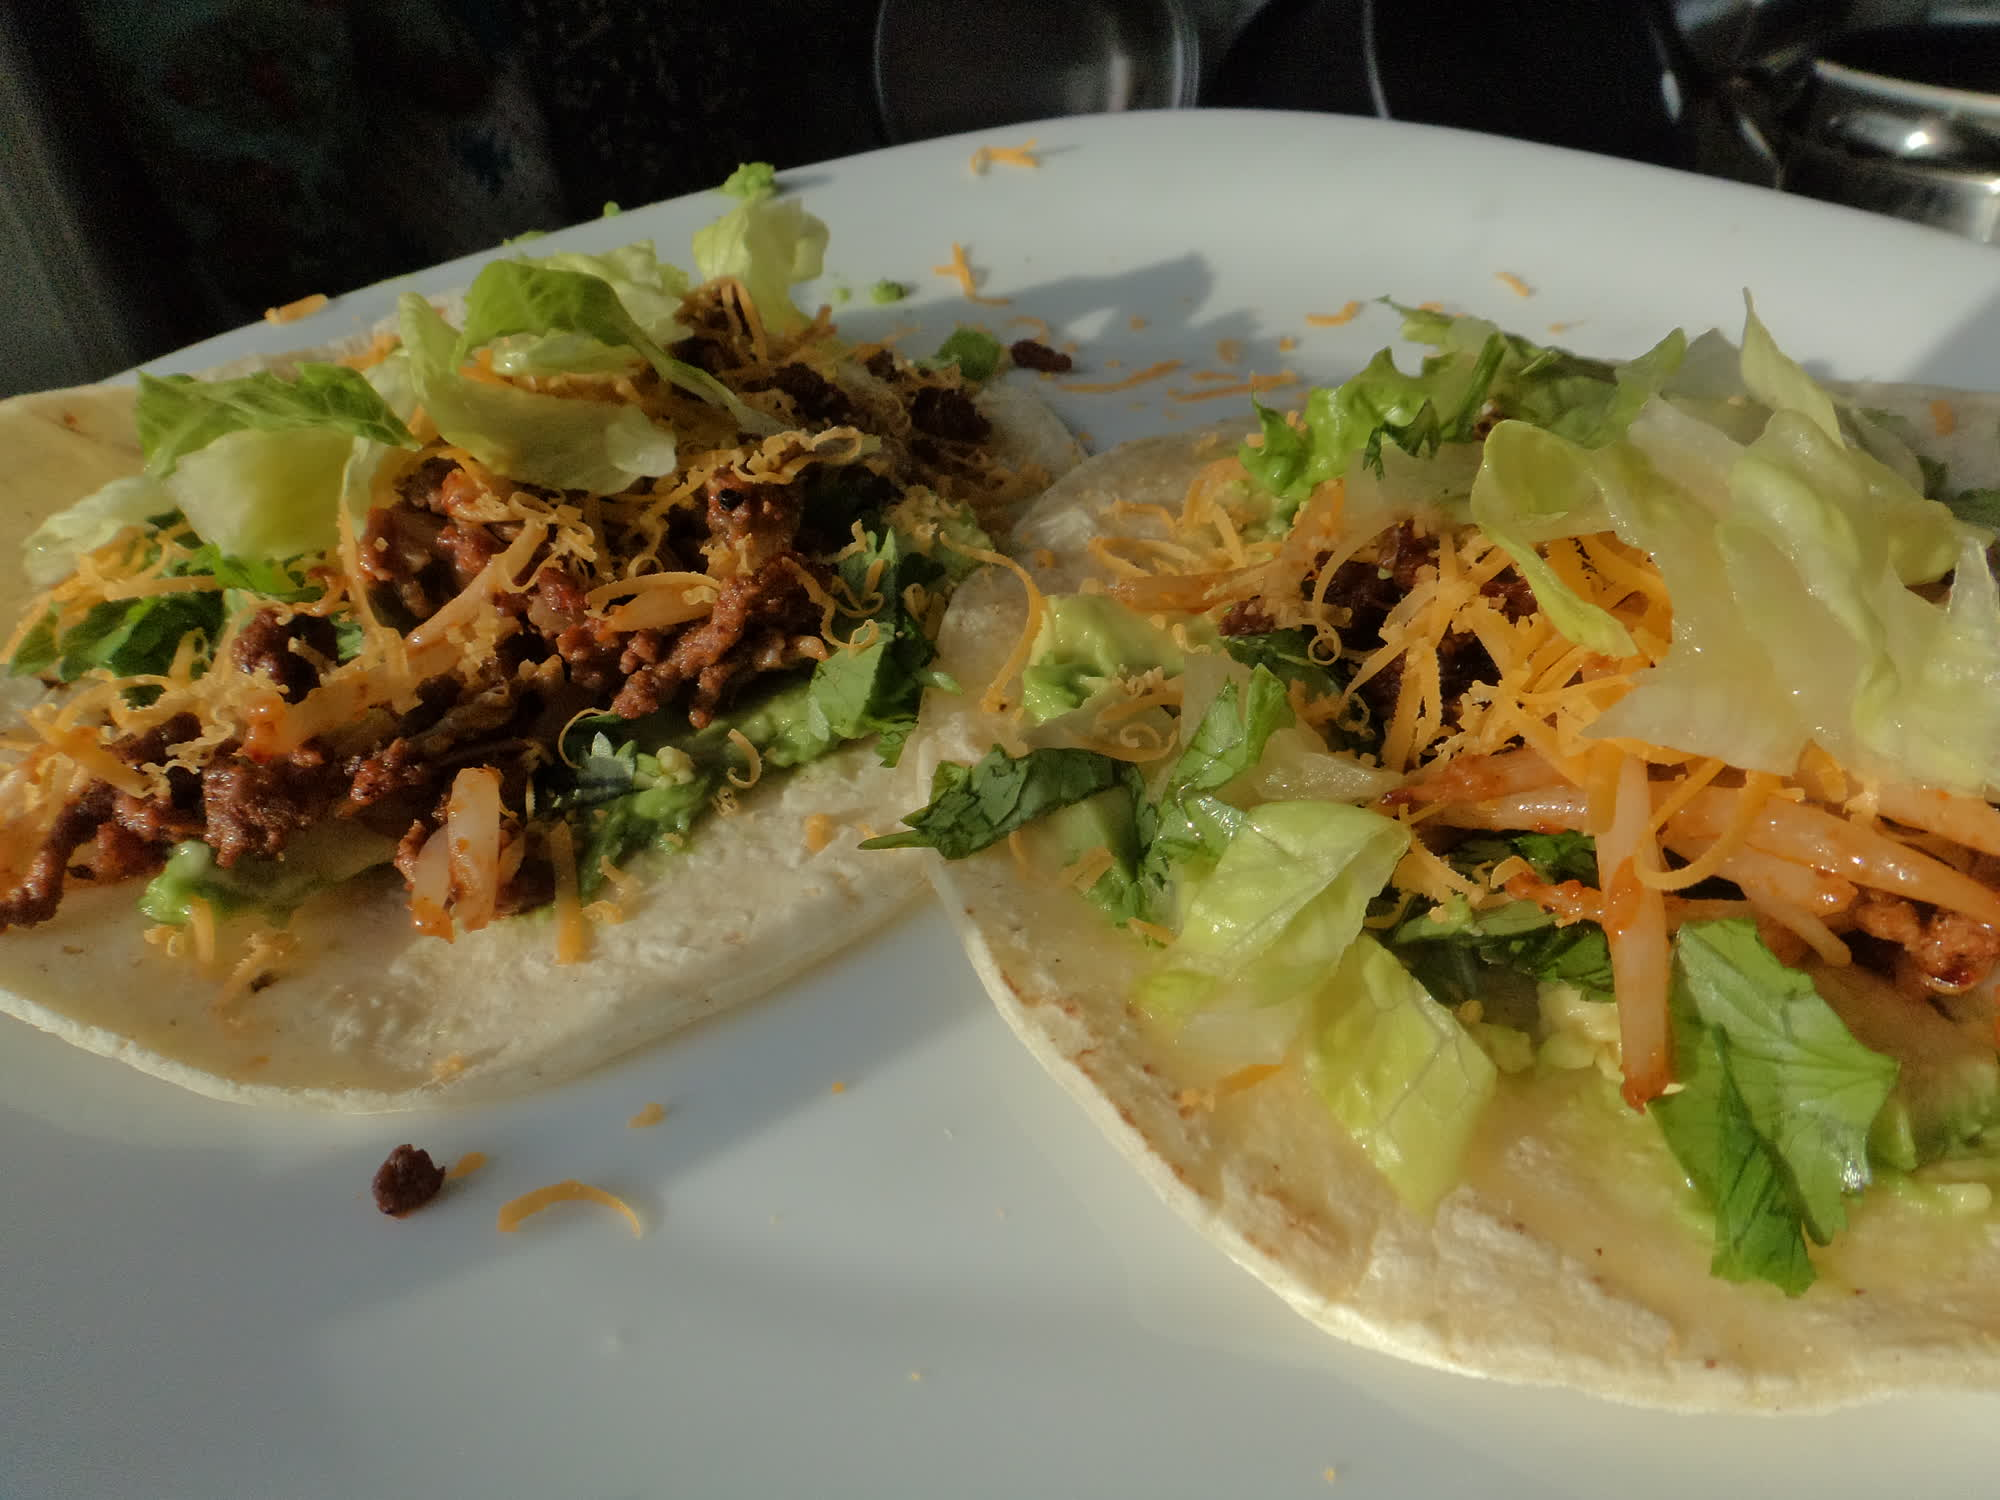 Spicy beef taco with fried bean sprouts and cheese.